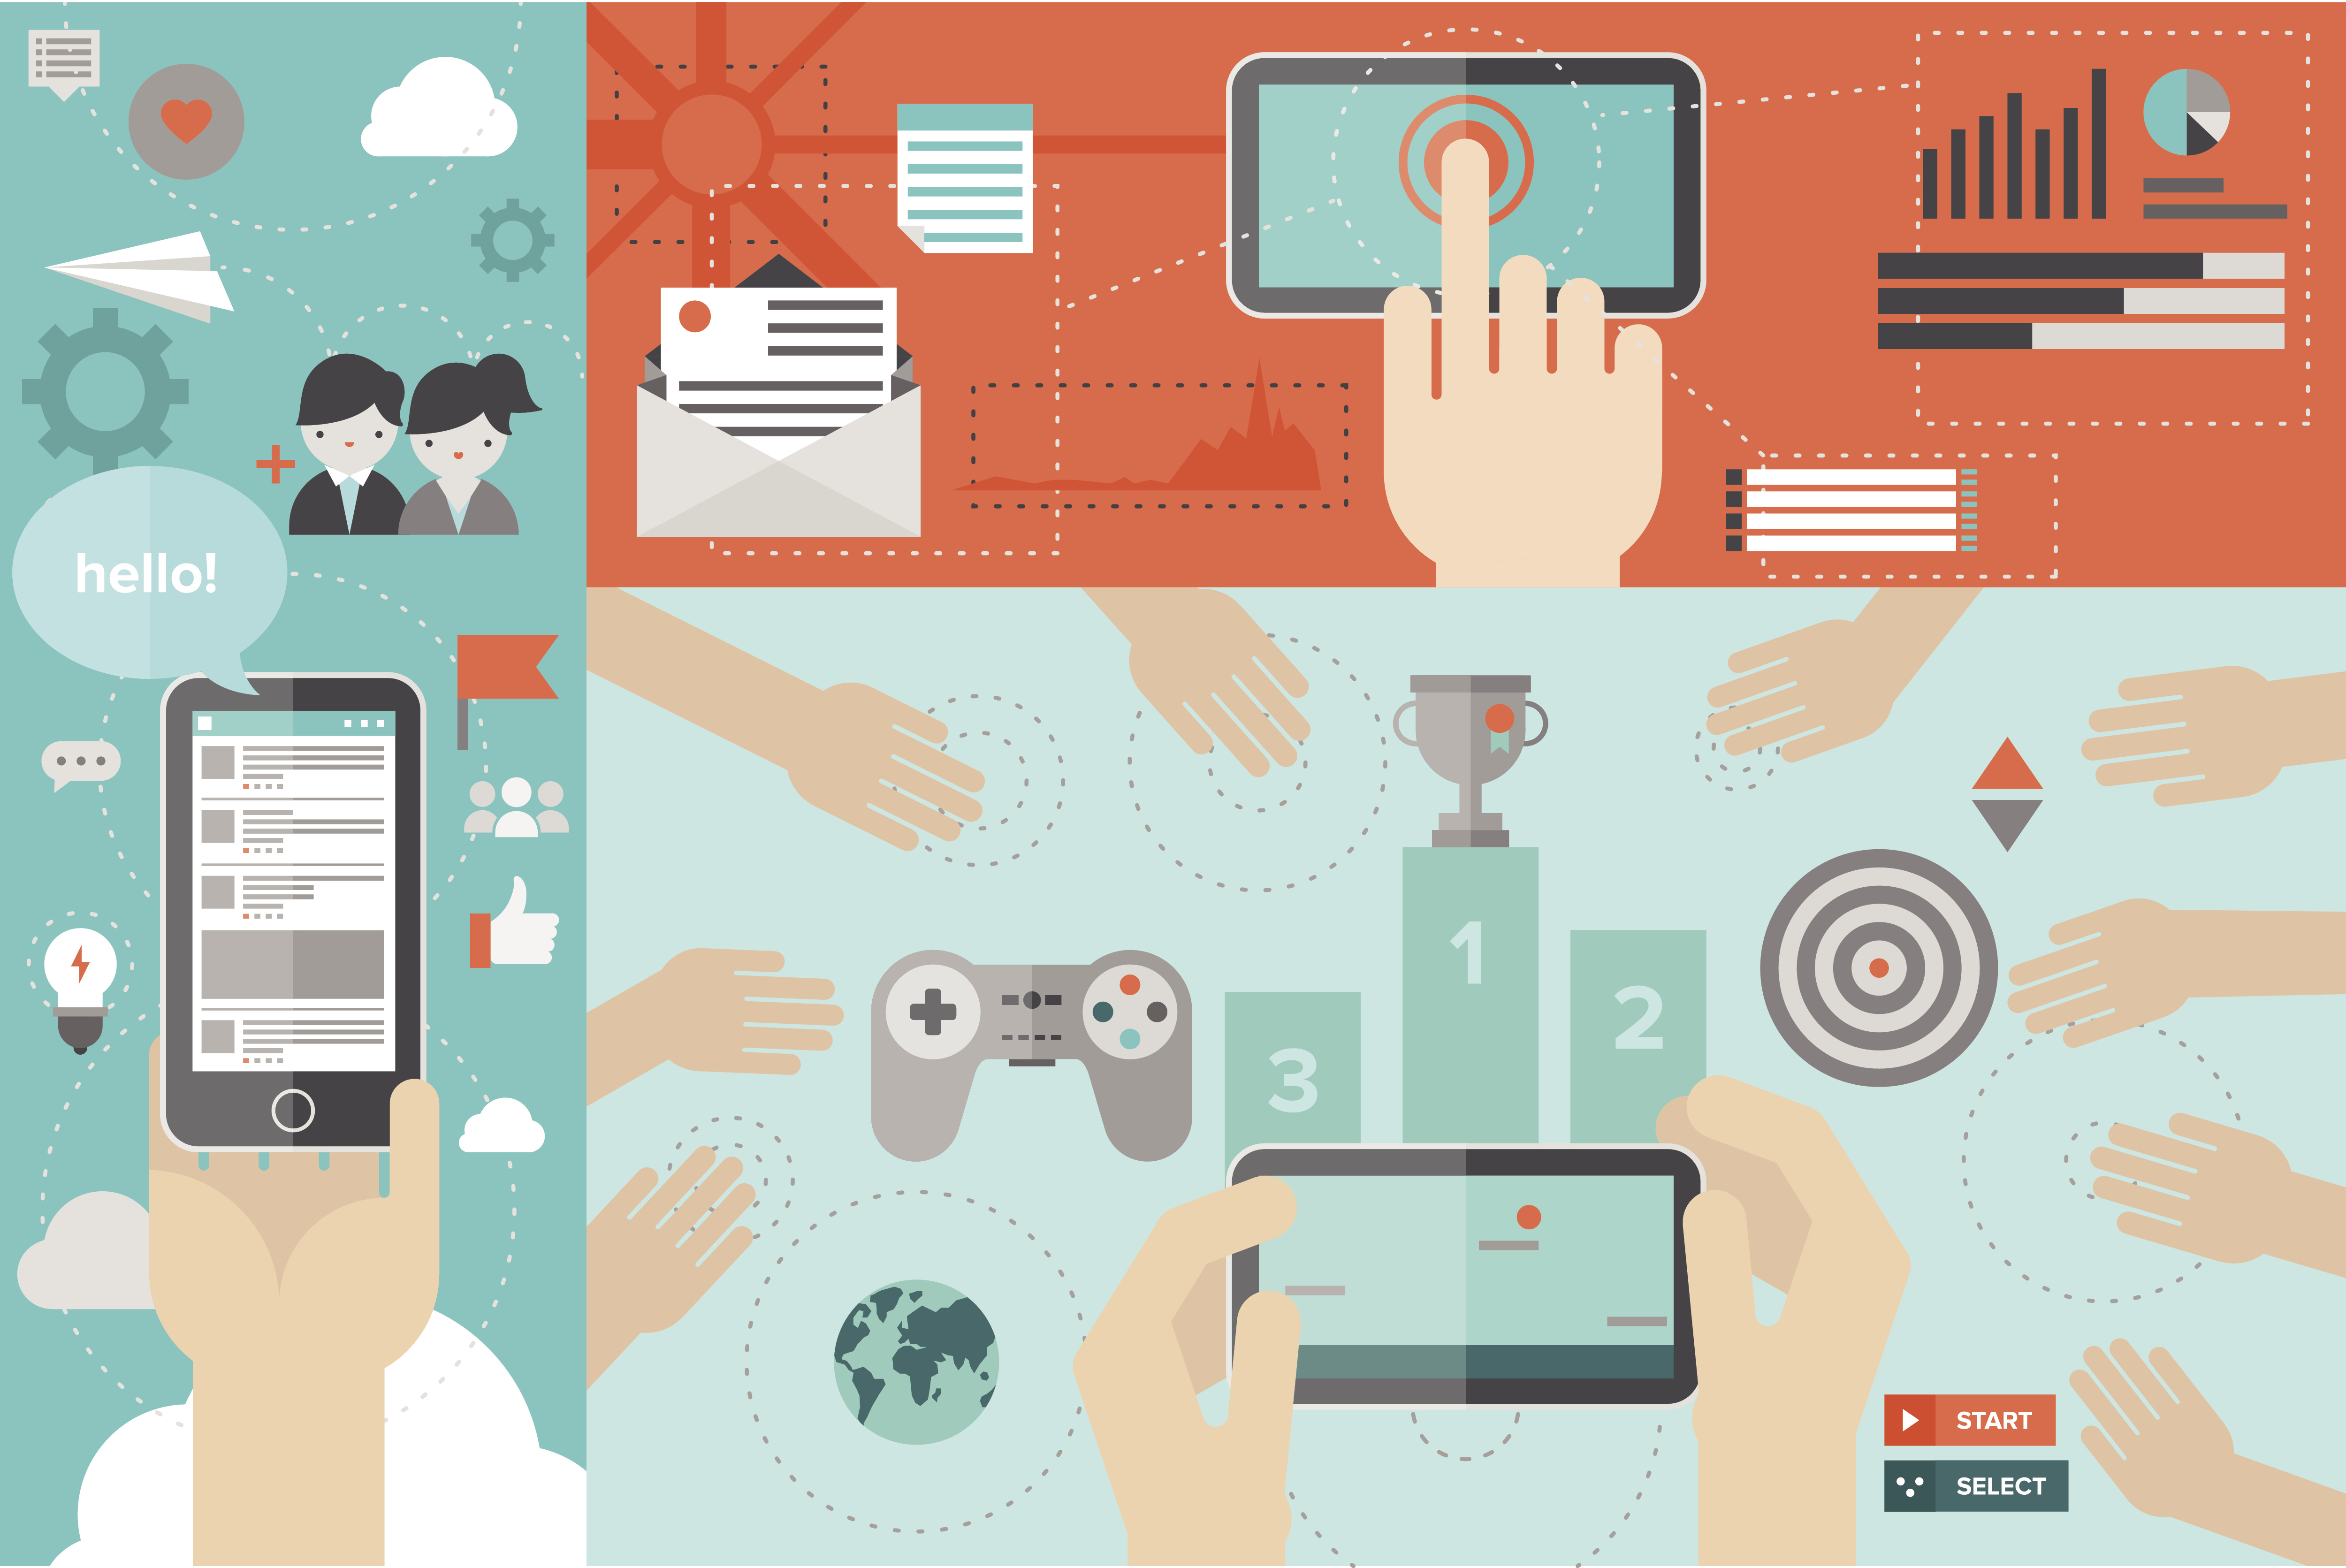 Flat design style modern vector illustration concept of mobile gaming with network friends, game playing awards, smart phone communication and chatting via social media services, using smartphone for mailing and networking.